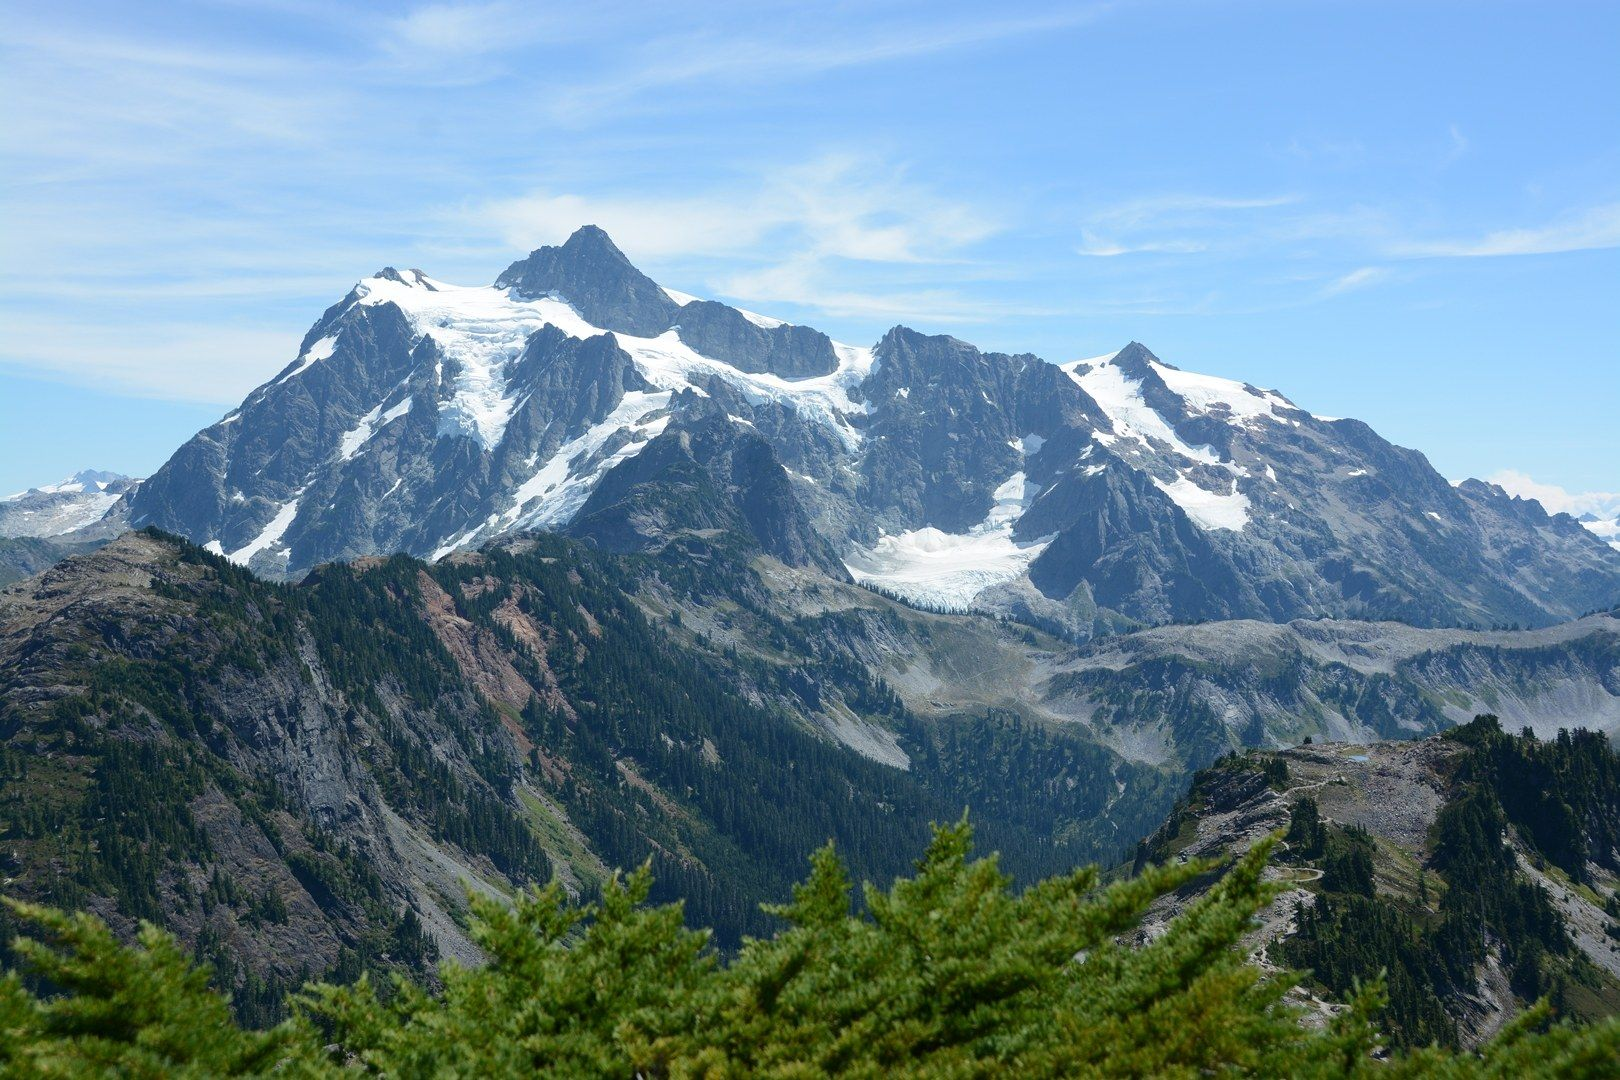 Mount Shuksan from Table Mountain. Photo by Ken Giesbers